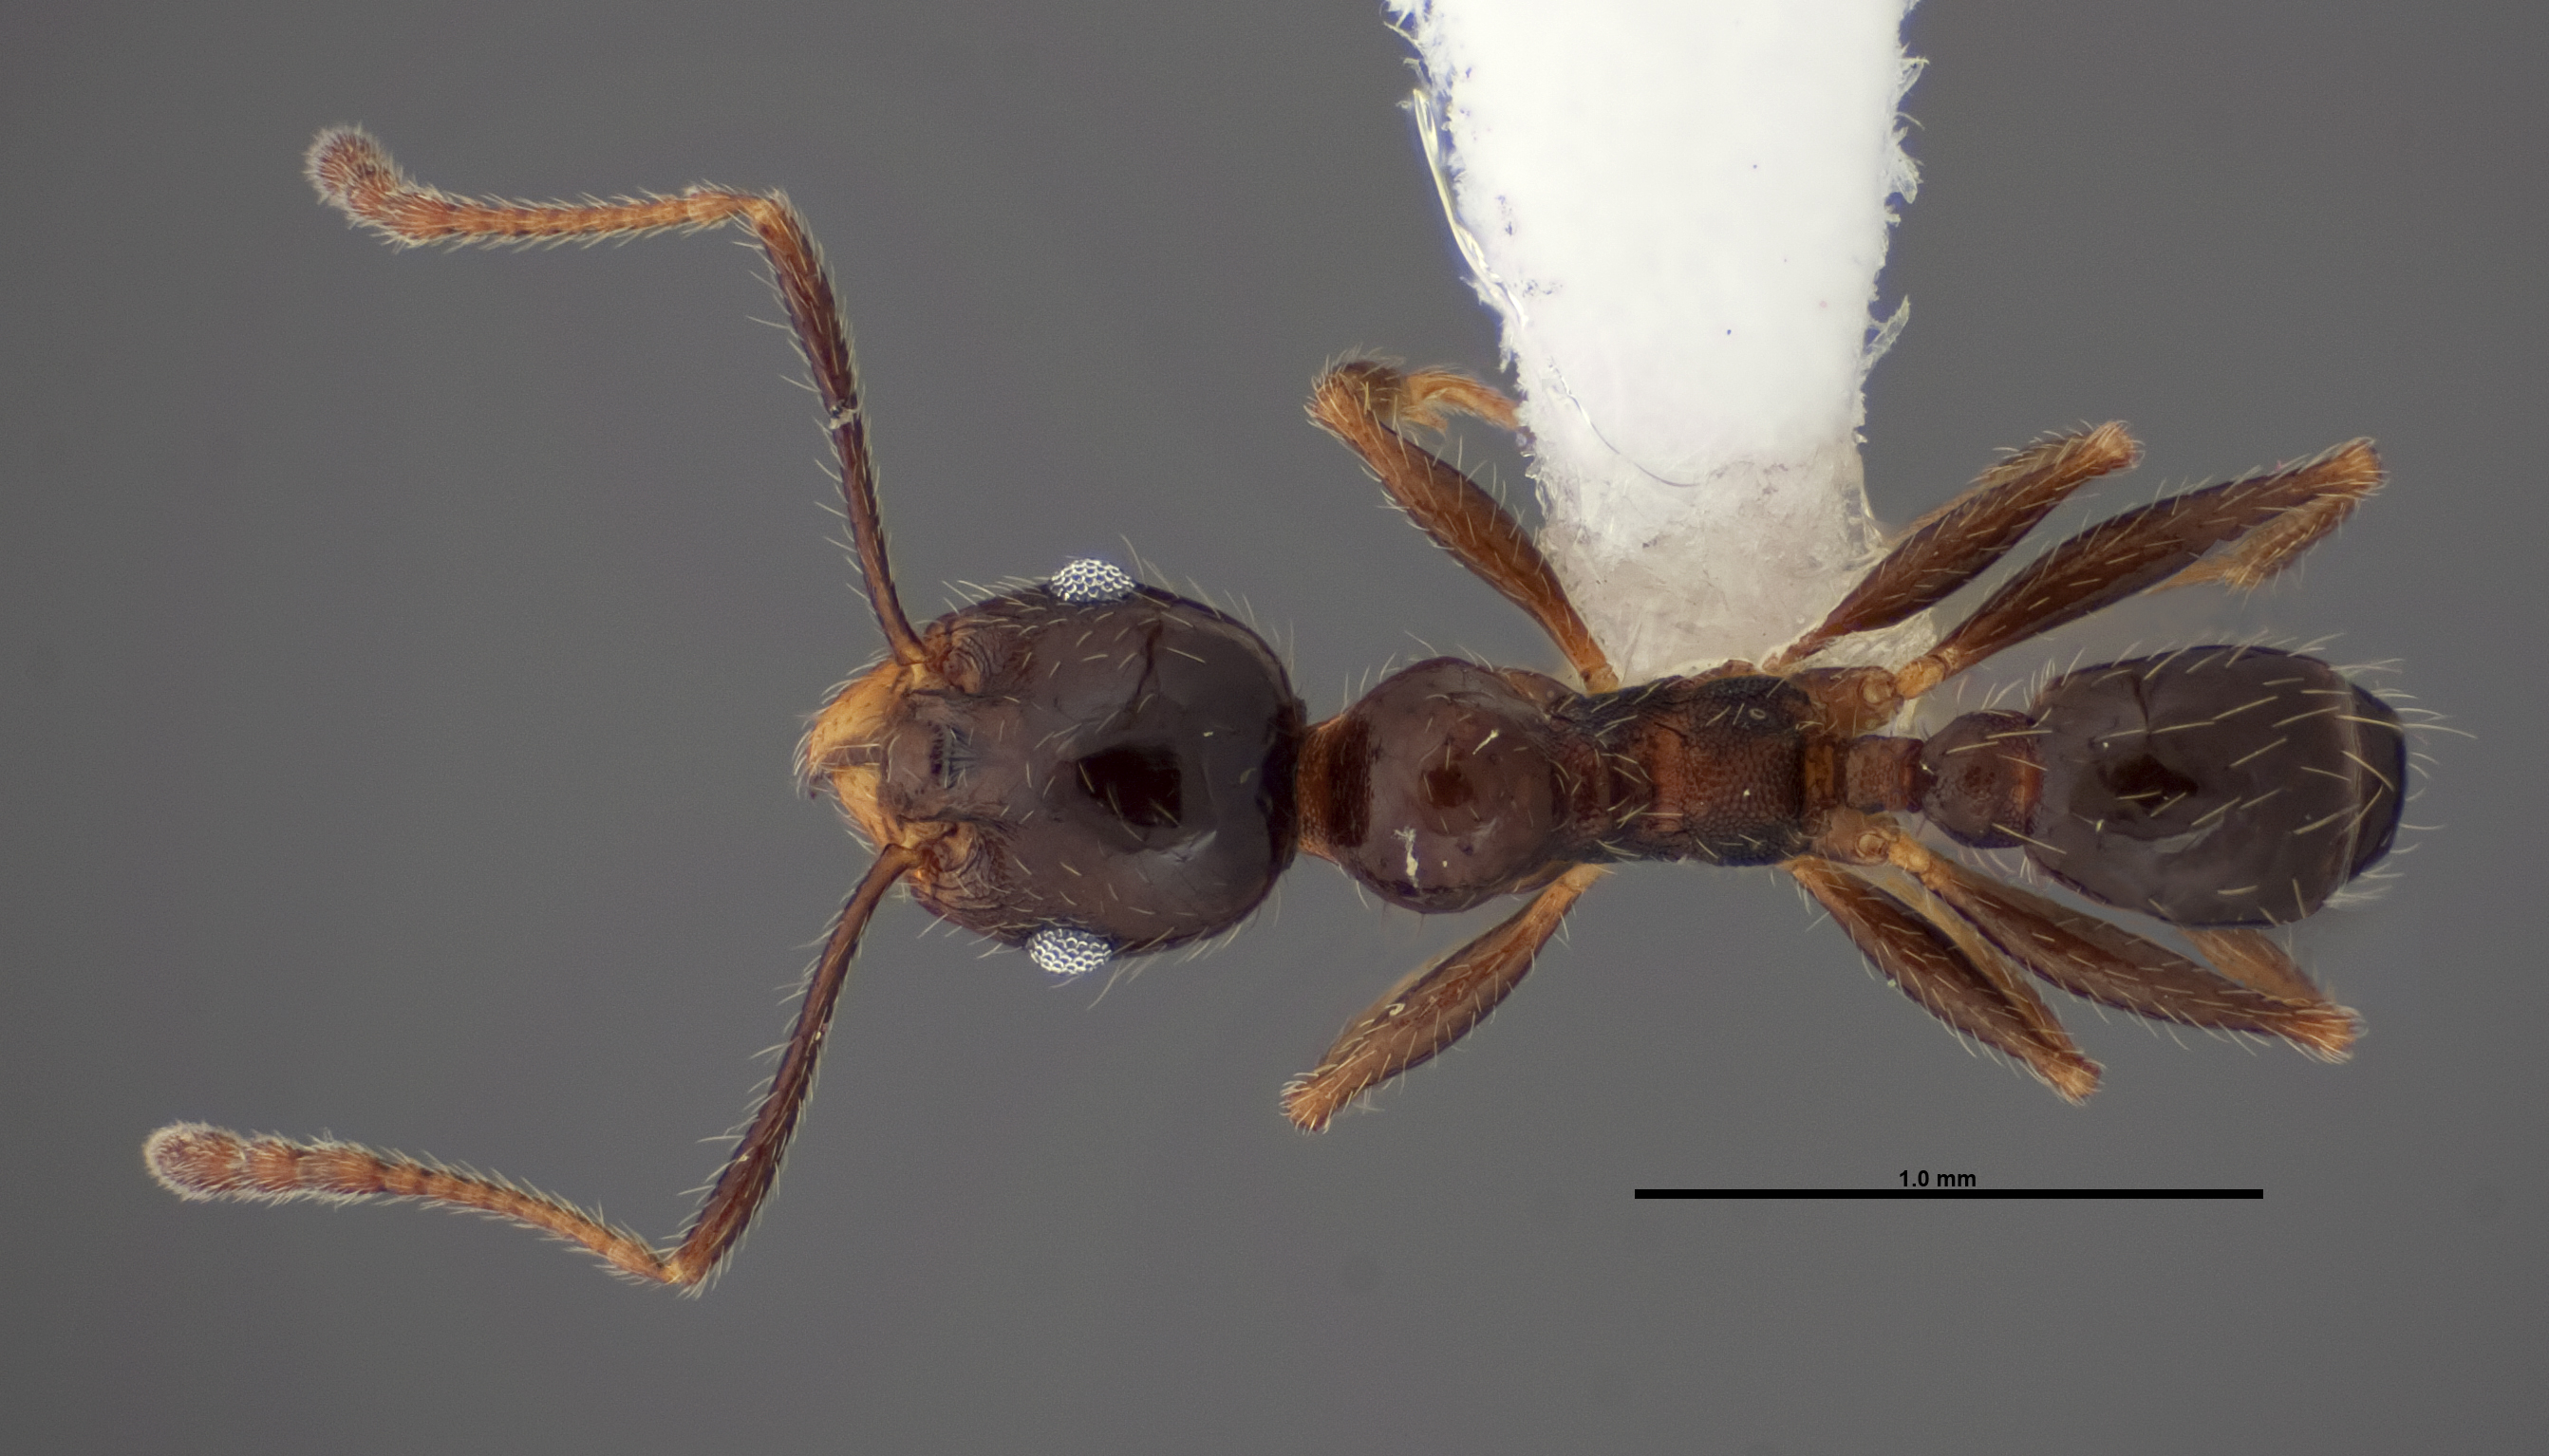 Image of Pheidole dentata